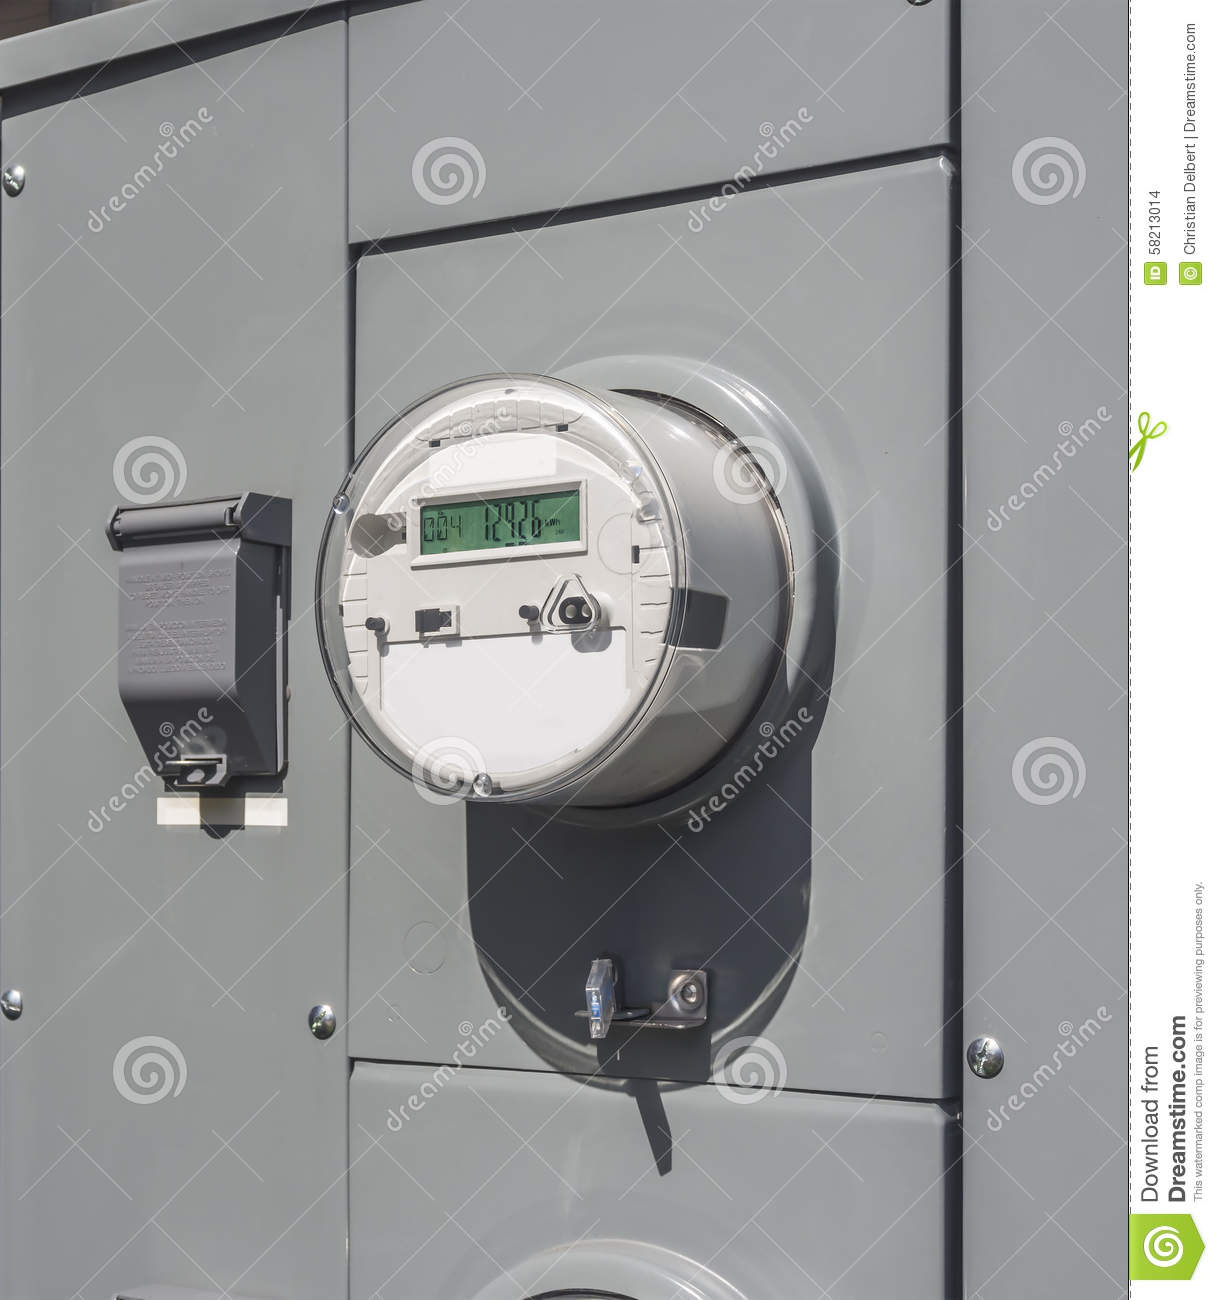 Commercial Electric Volt Meters : Electricity usage meter stock photo image